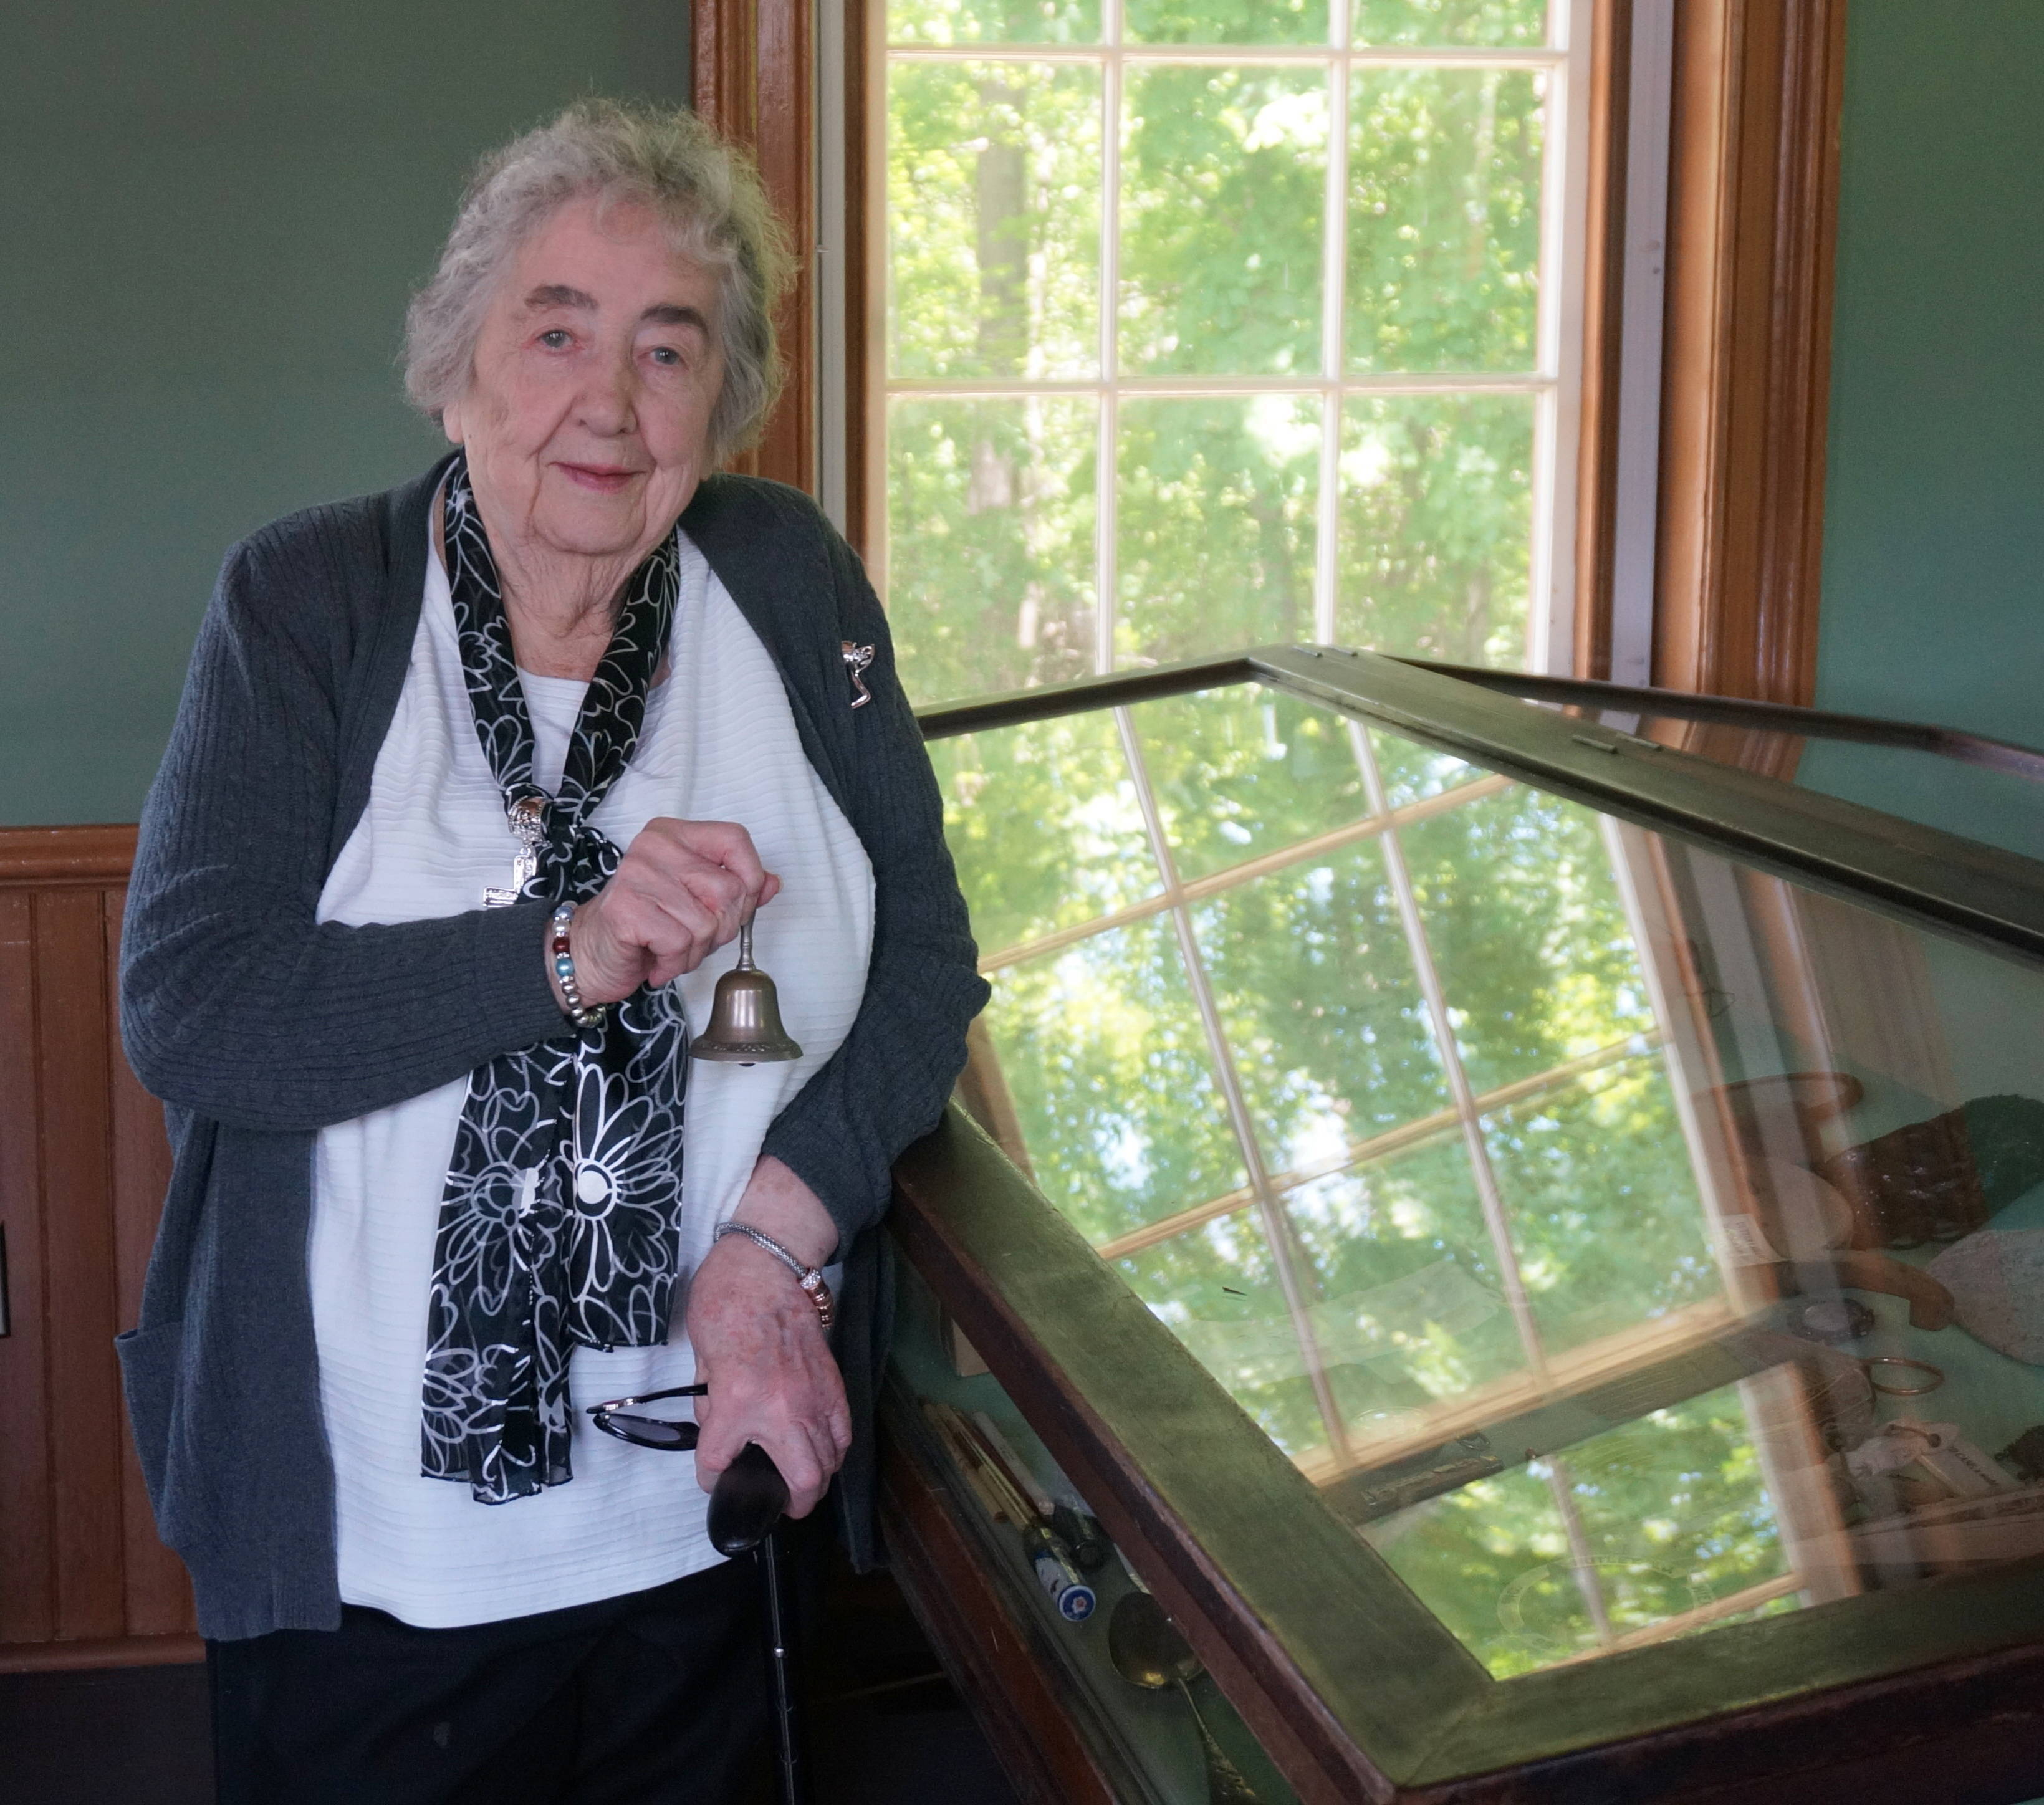 58f5f0114b18fbc65c71_a_Ginny_Cook_holds_a_mini_bell_from_the_Montville_Reformed_Church.JPG